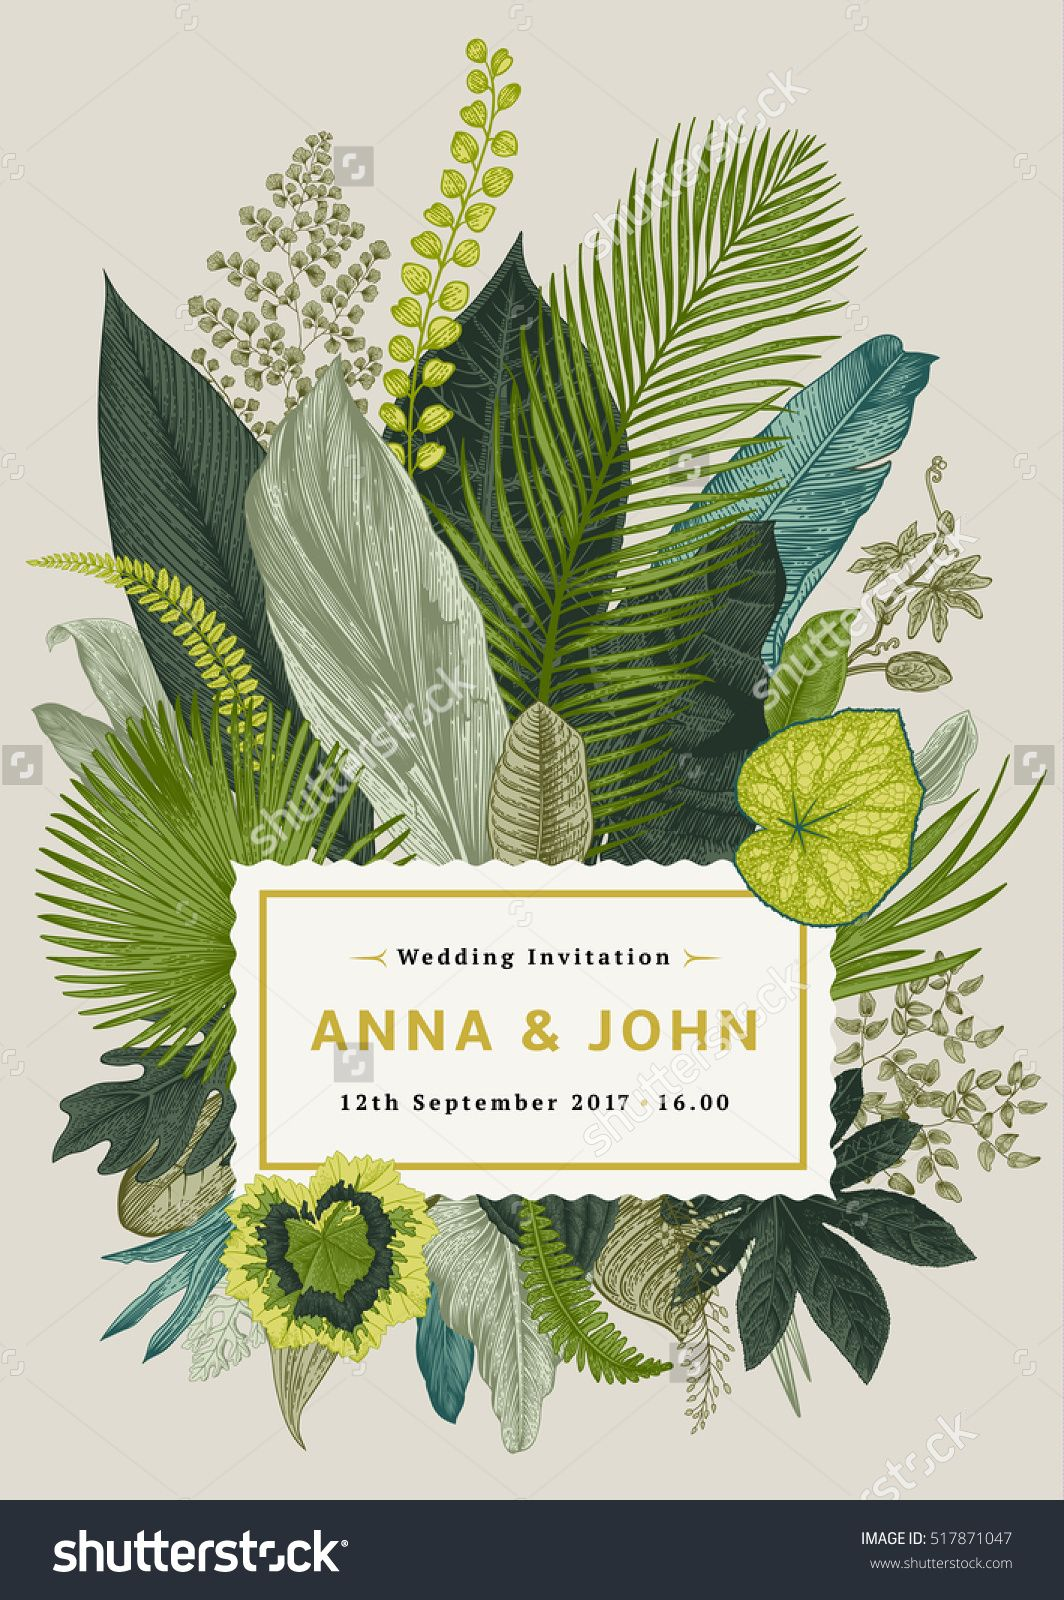 Vector vintage card wedding invitation botanical illustration vector vintage card wedding invitation botanical illustration tropical leaves stopboris Image collections